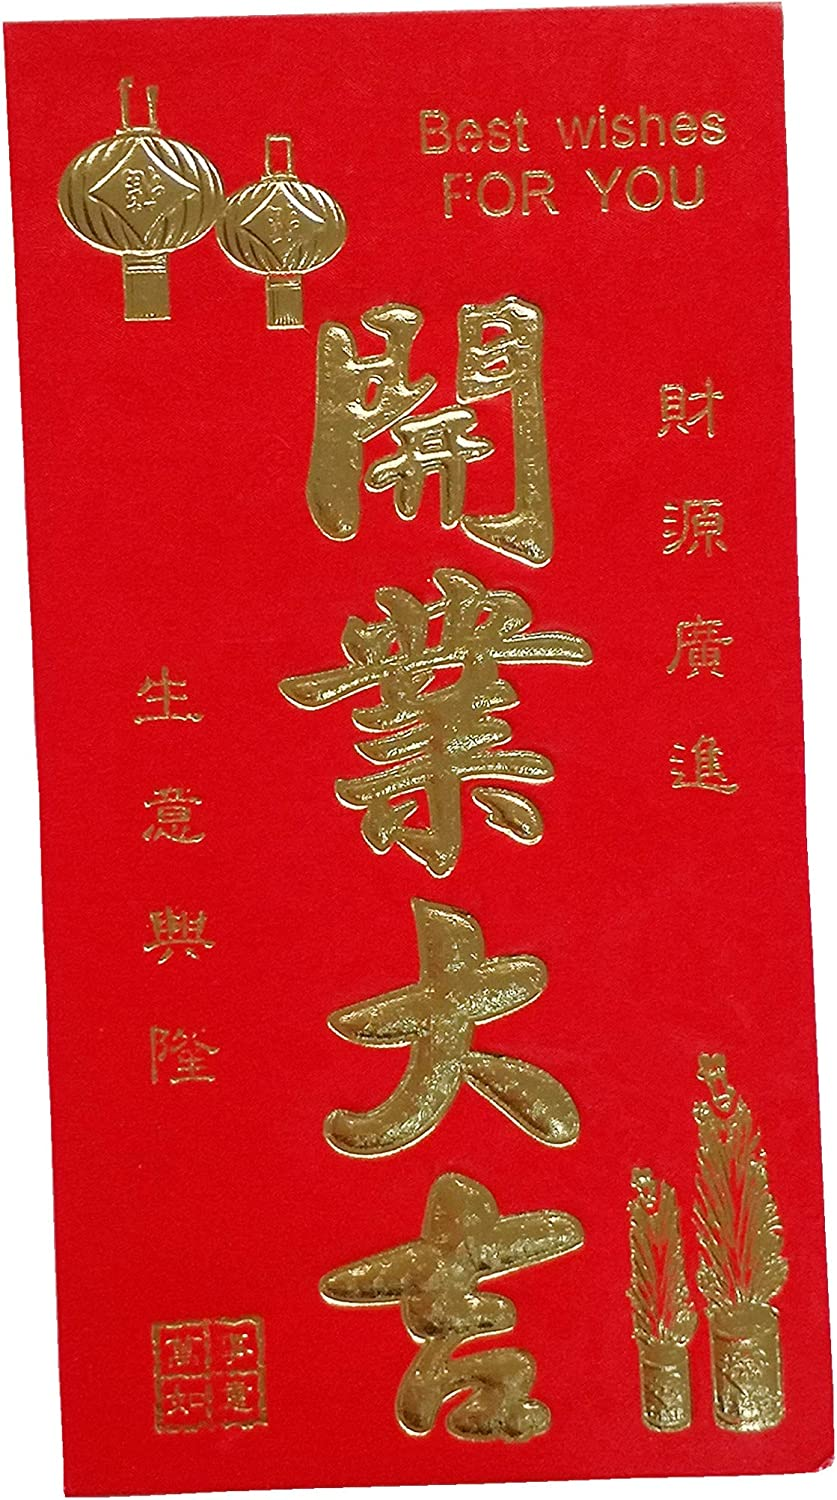 Red17 6 // Package) Chinese Classic Red Envelopes for All Occasions